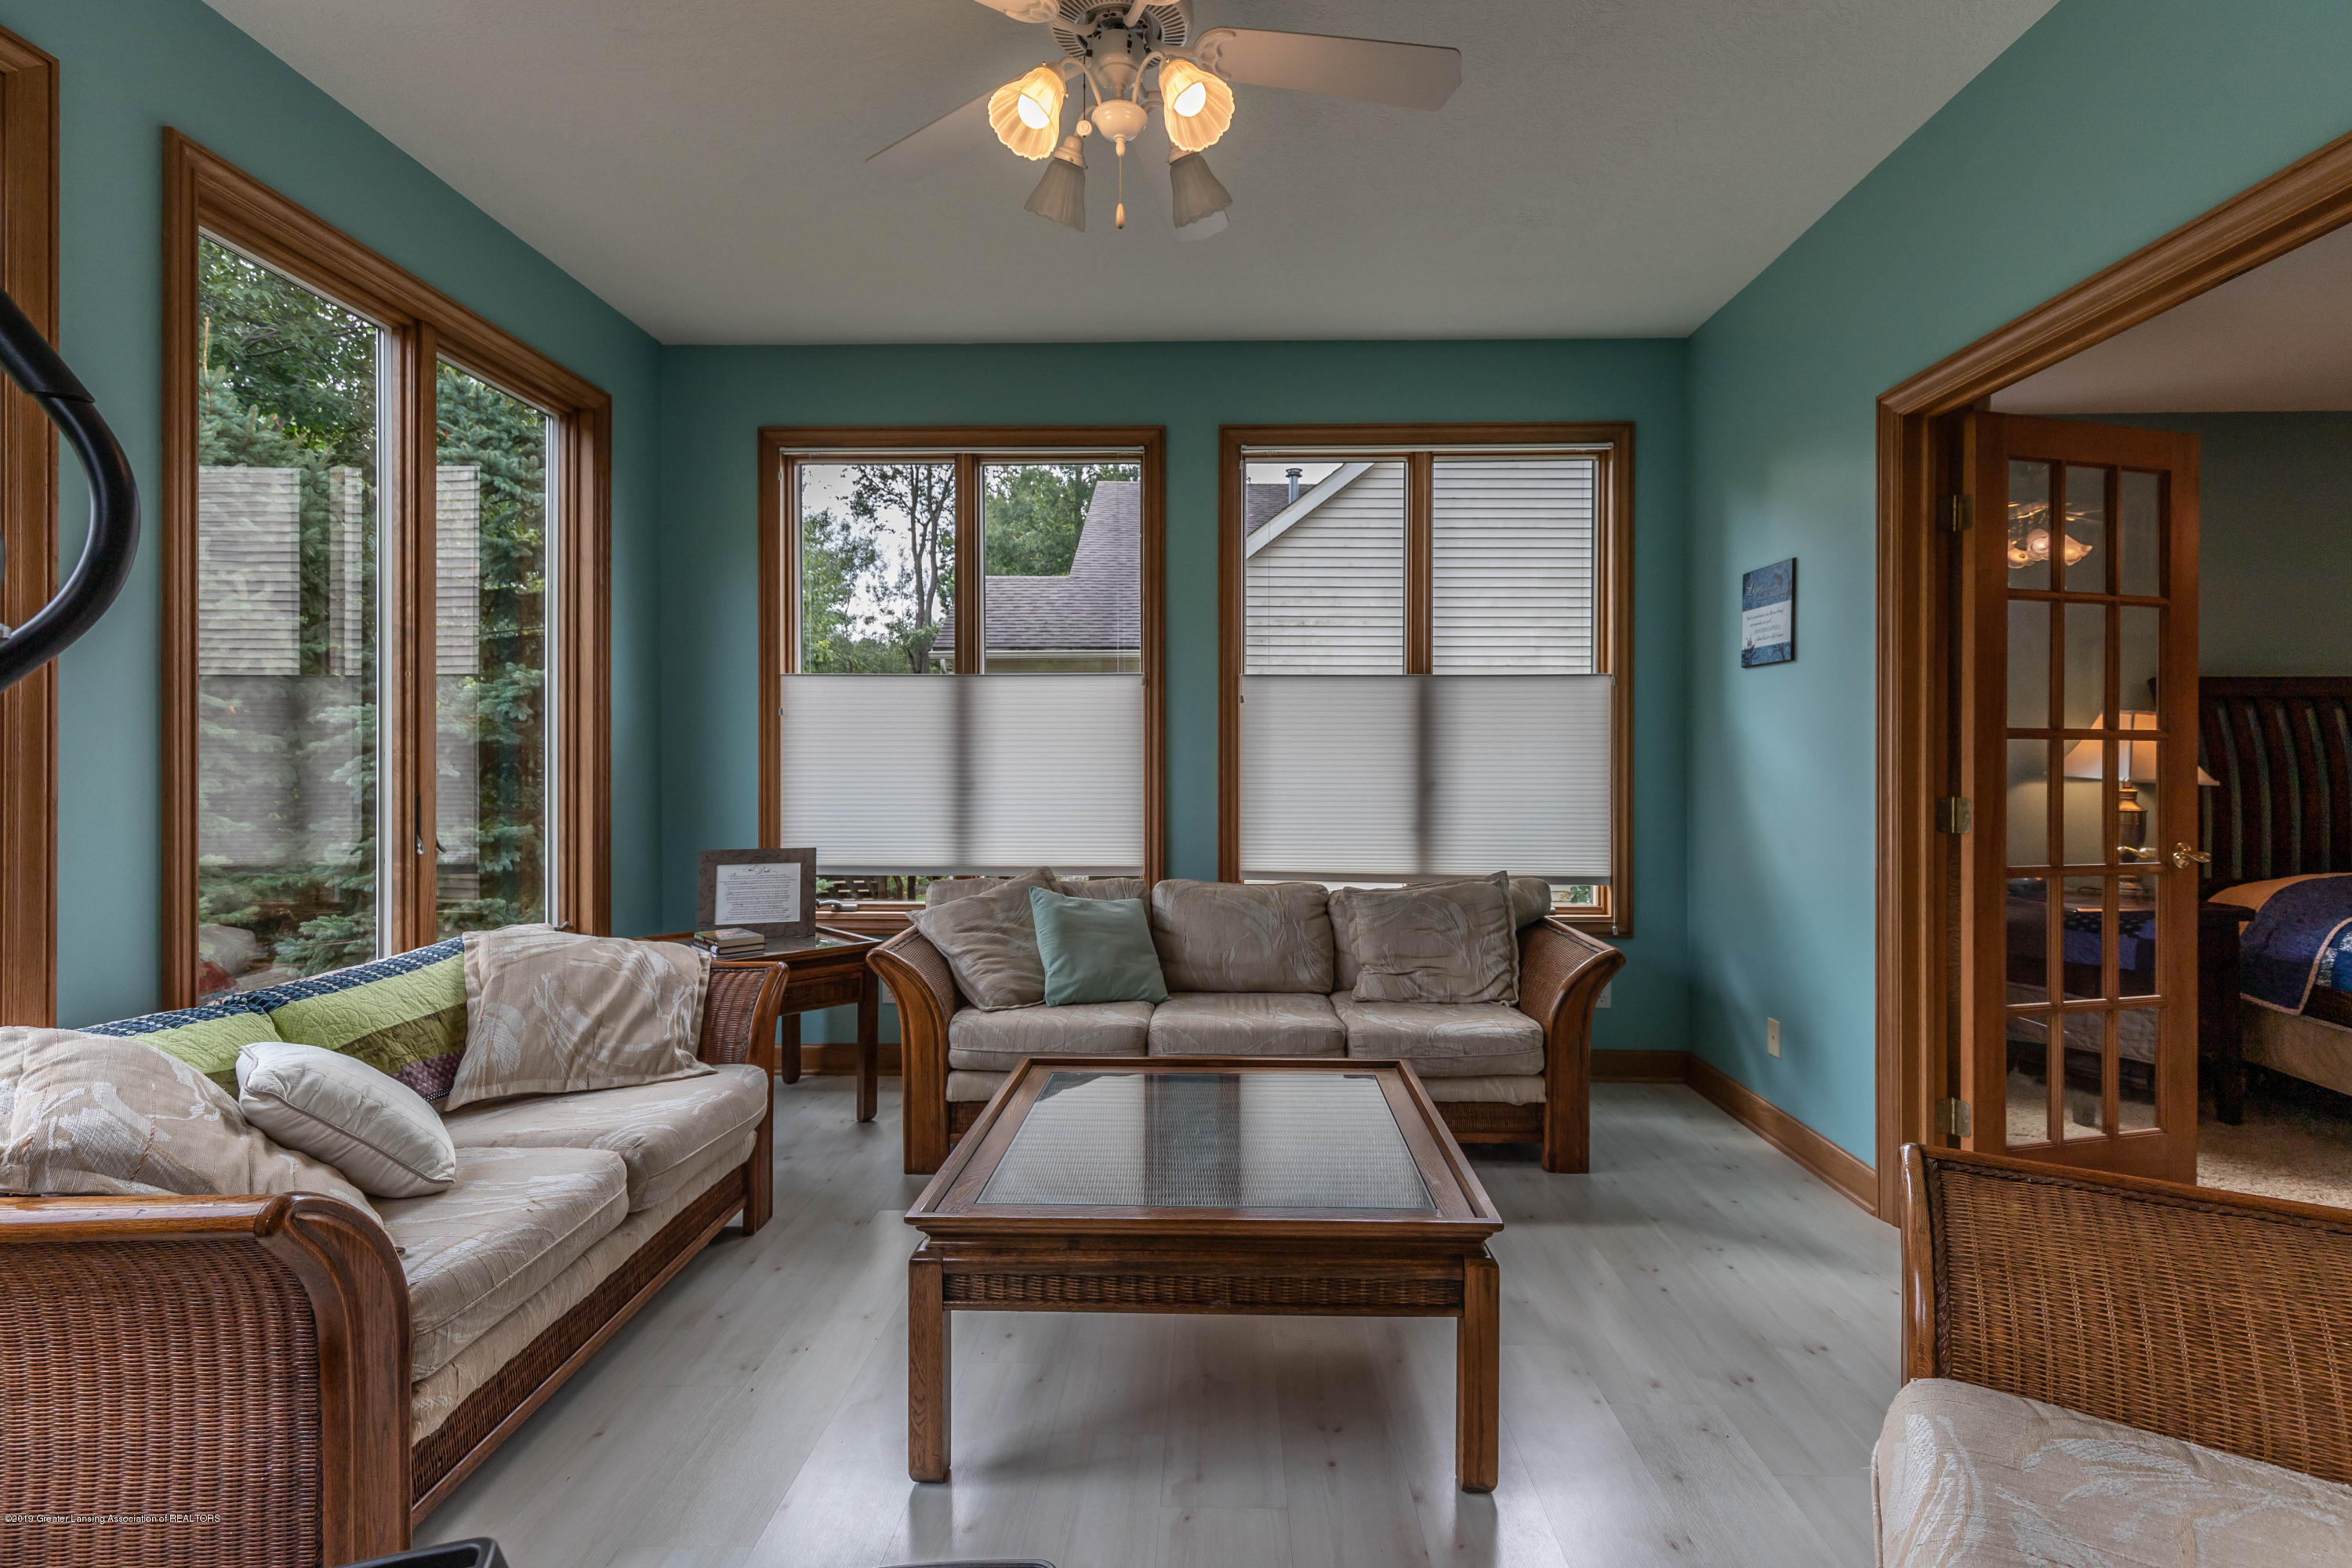 13185 Watercrest Dr - Sunroom - 20